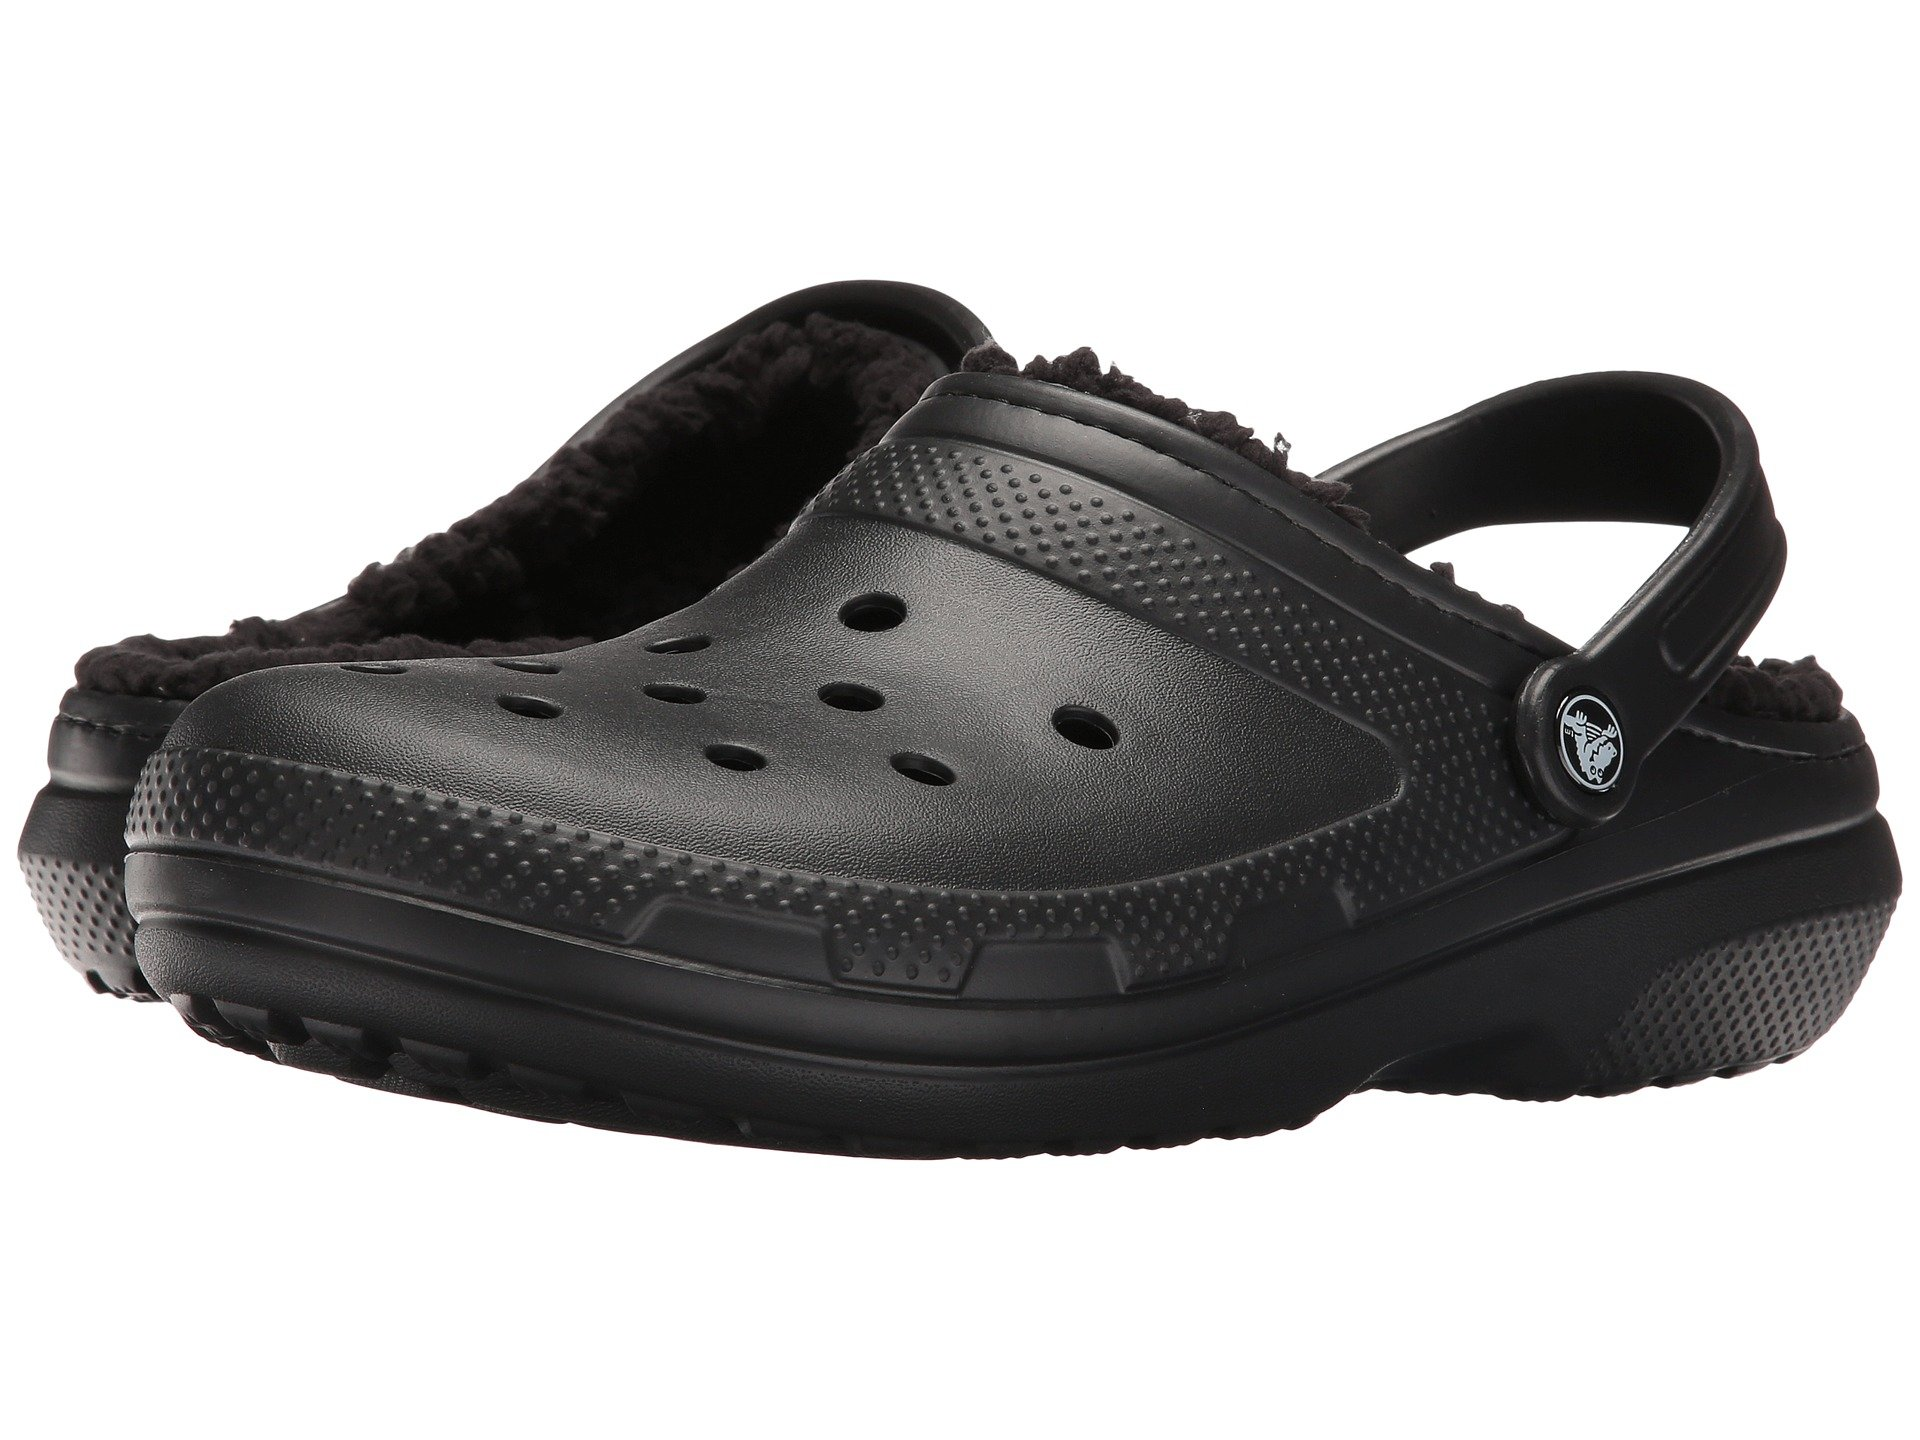 c607f9469194 Crocs. Classic Clog.  39.94. 5Rated 5 stars. Black Black